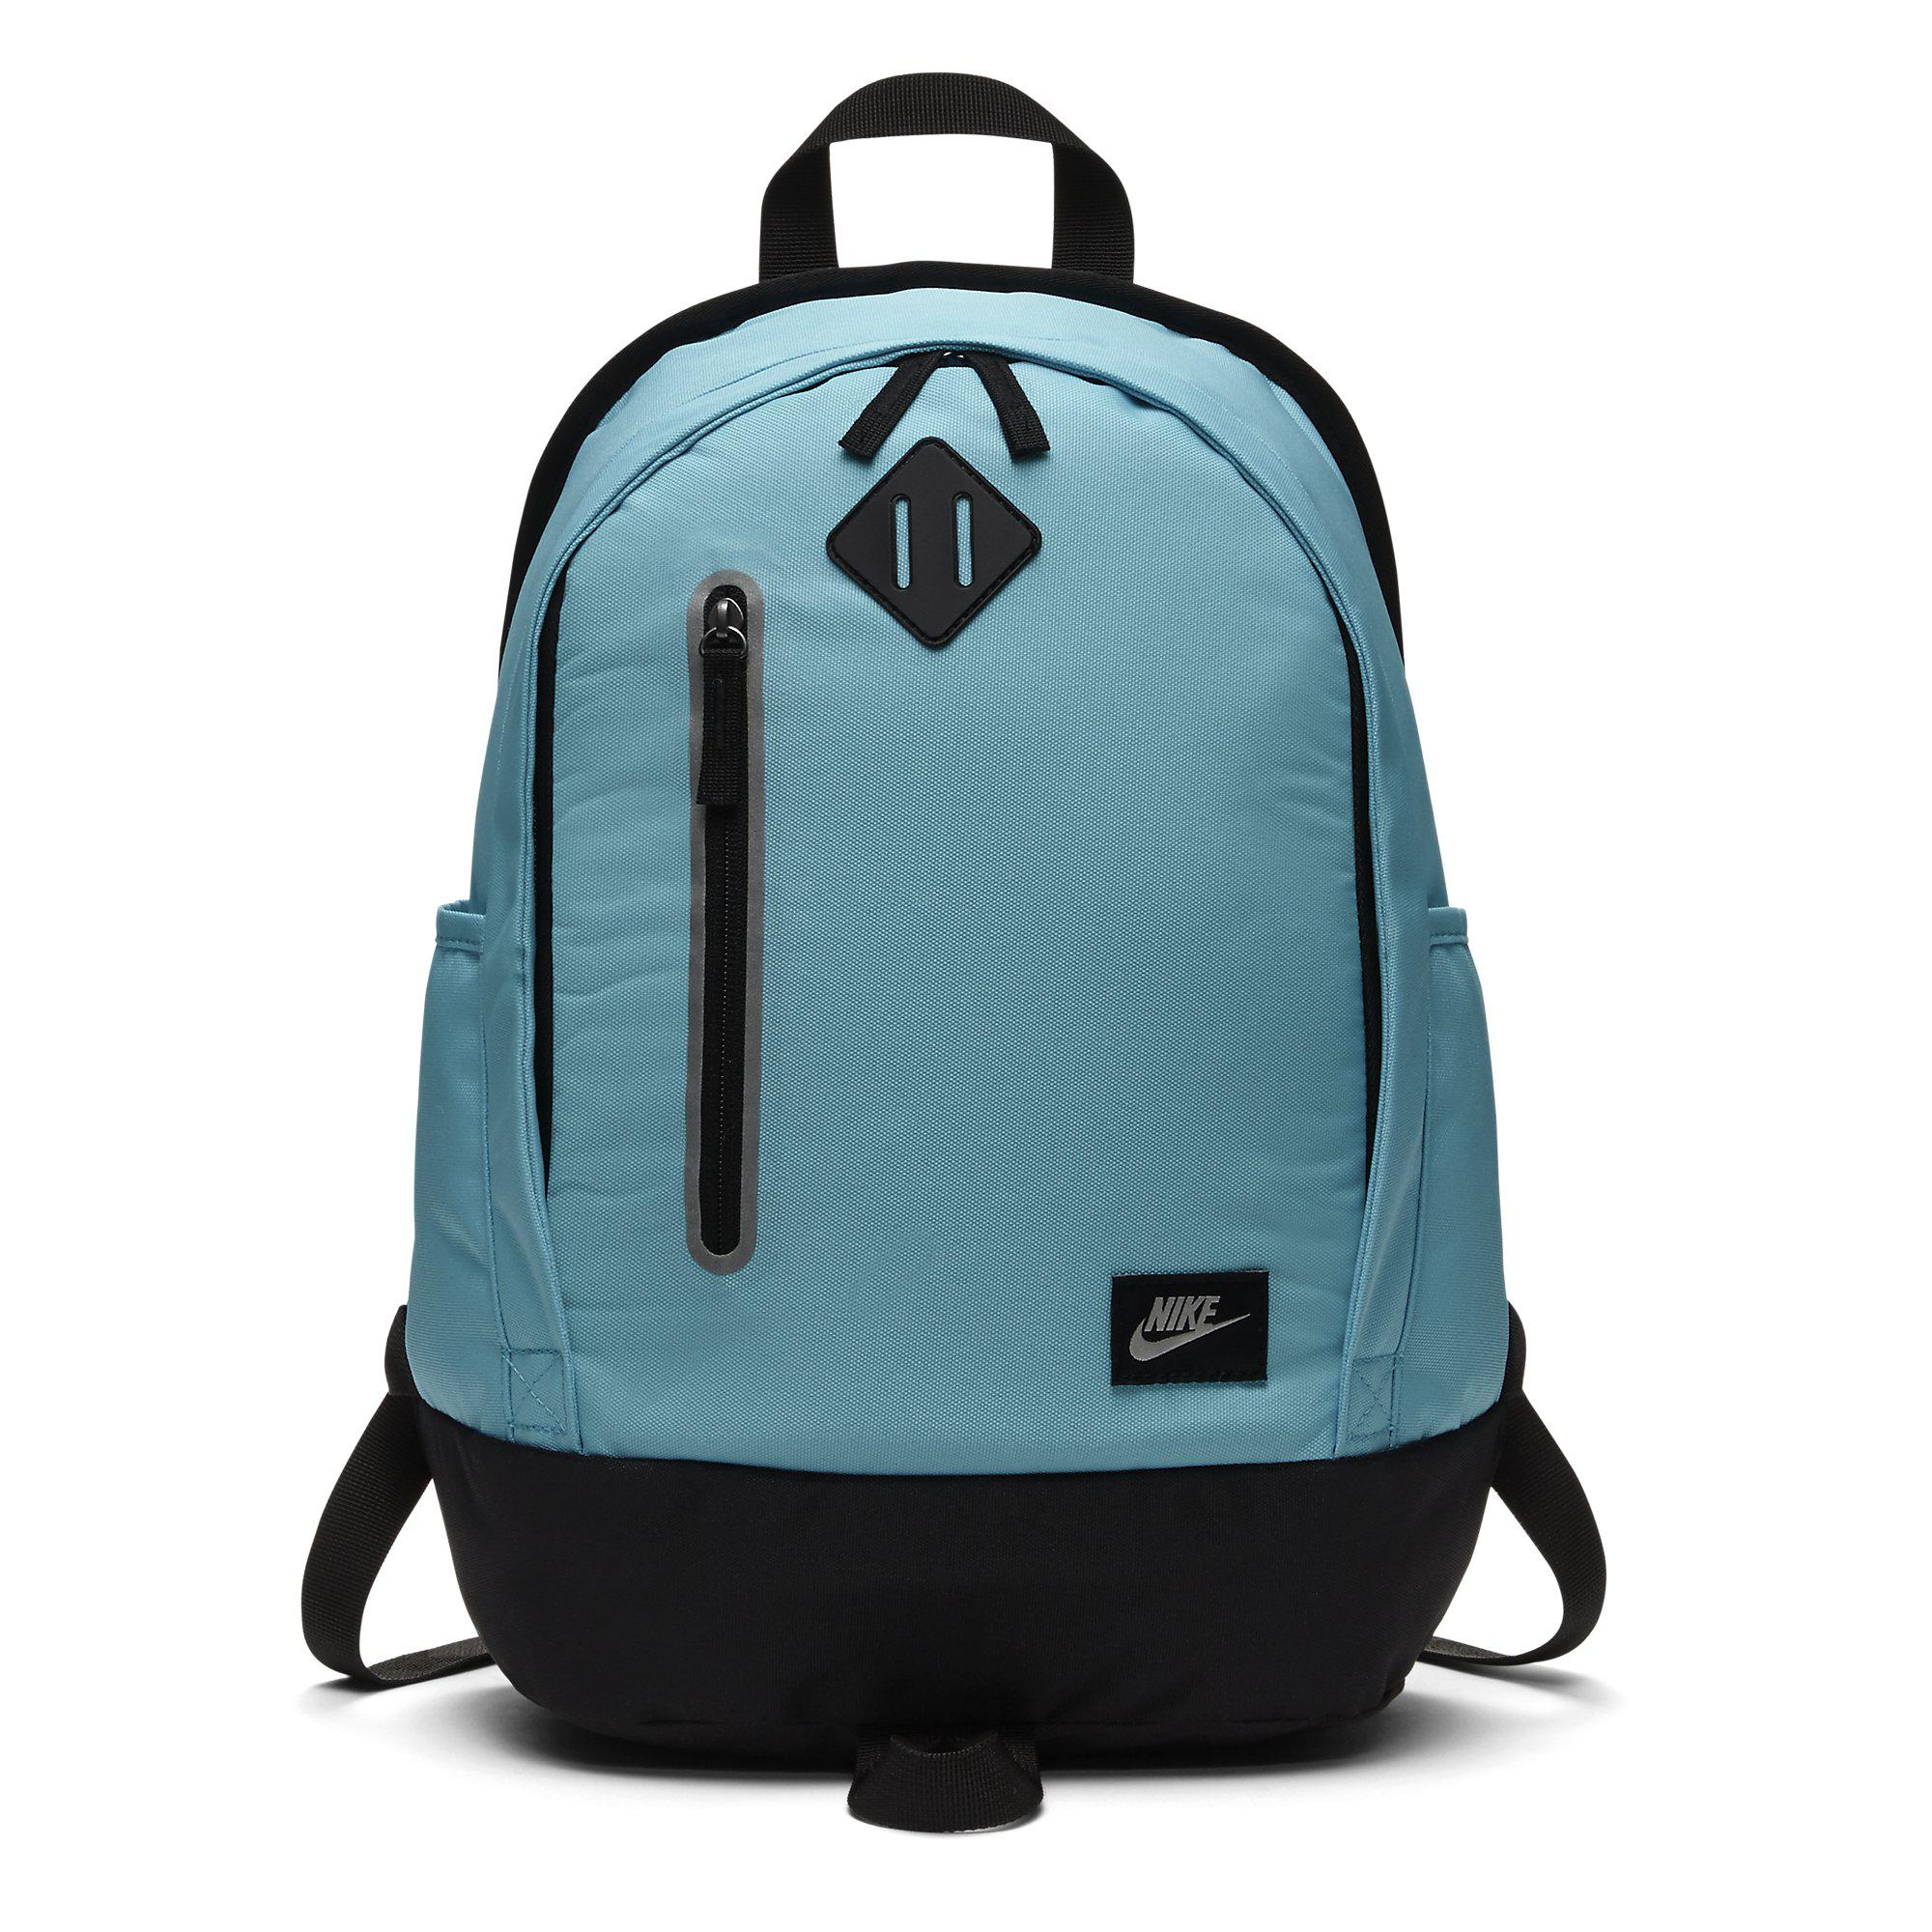 Nike Cheyenne Solid Kids Backpack - Polarized Blue - Tennisnuts.com c1f197c1b1